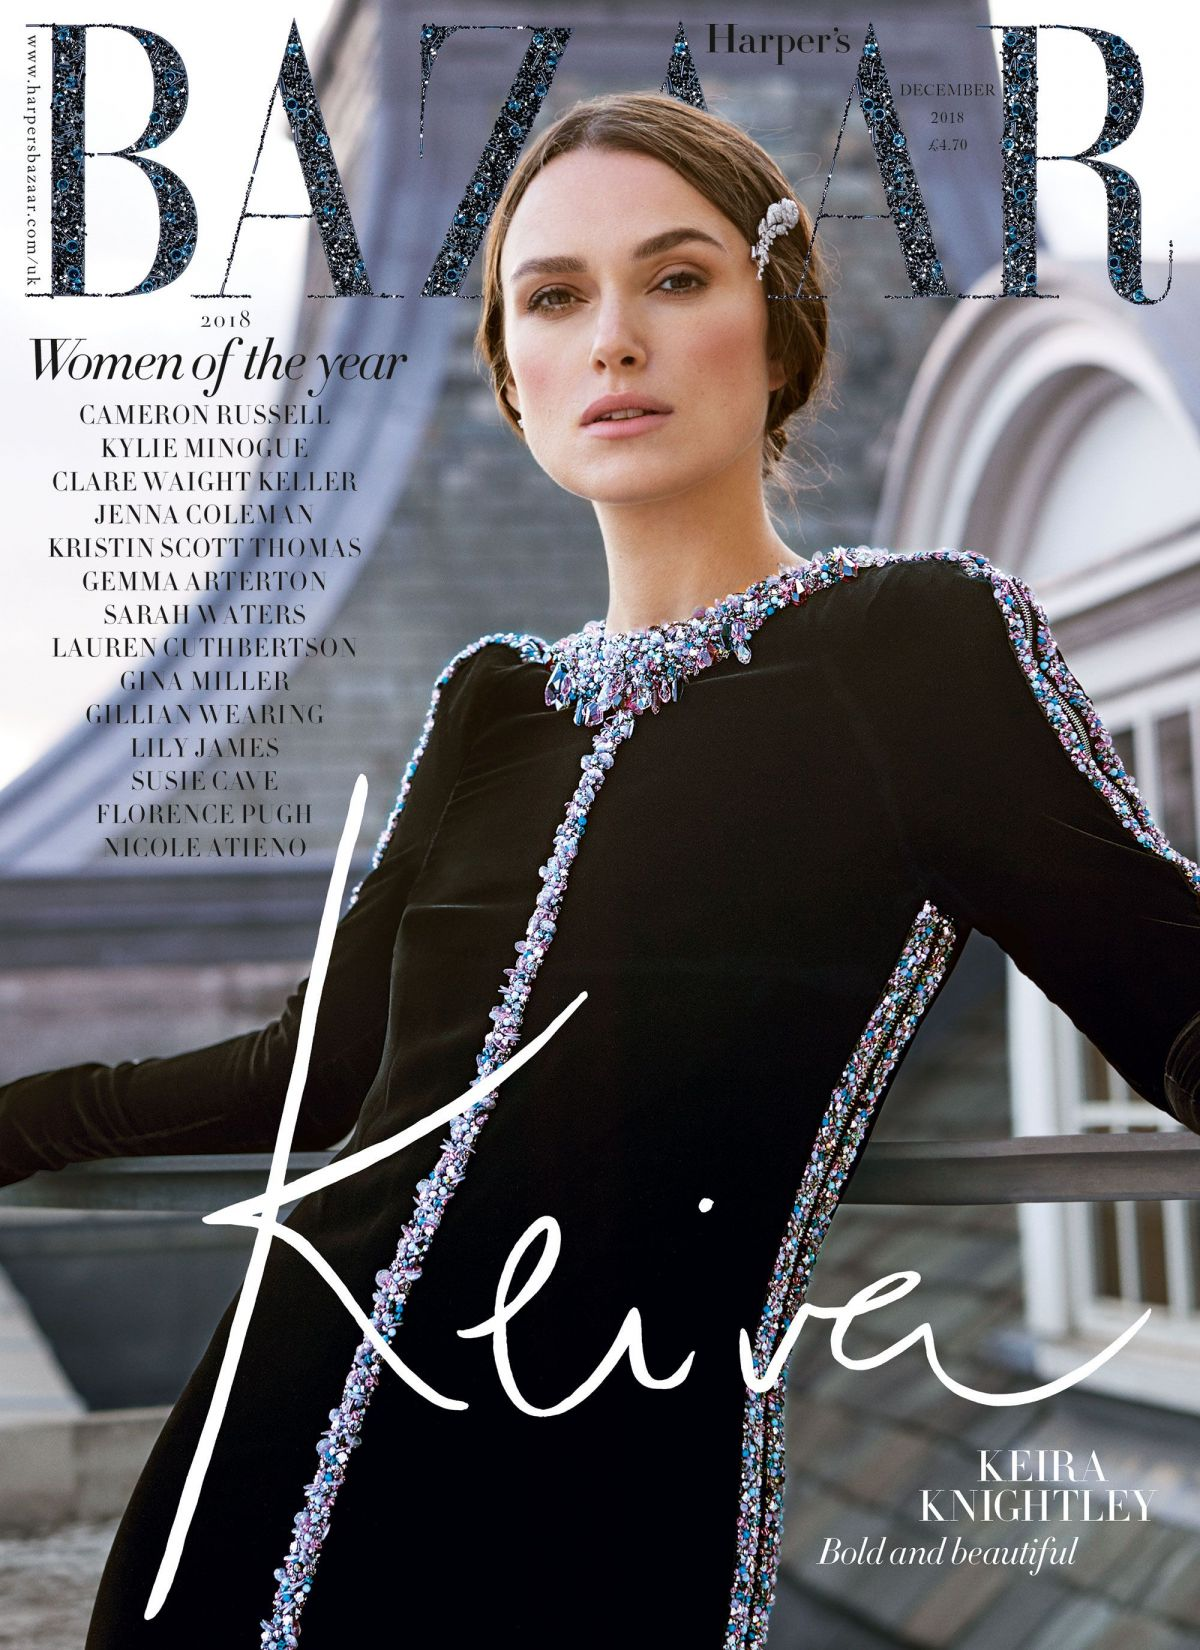 keira-knightley-in-harper-s-bazaar-magazine-uk-december-2018-6.jpg